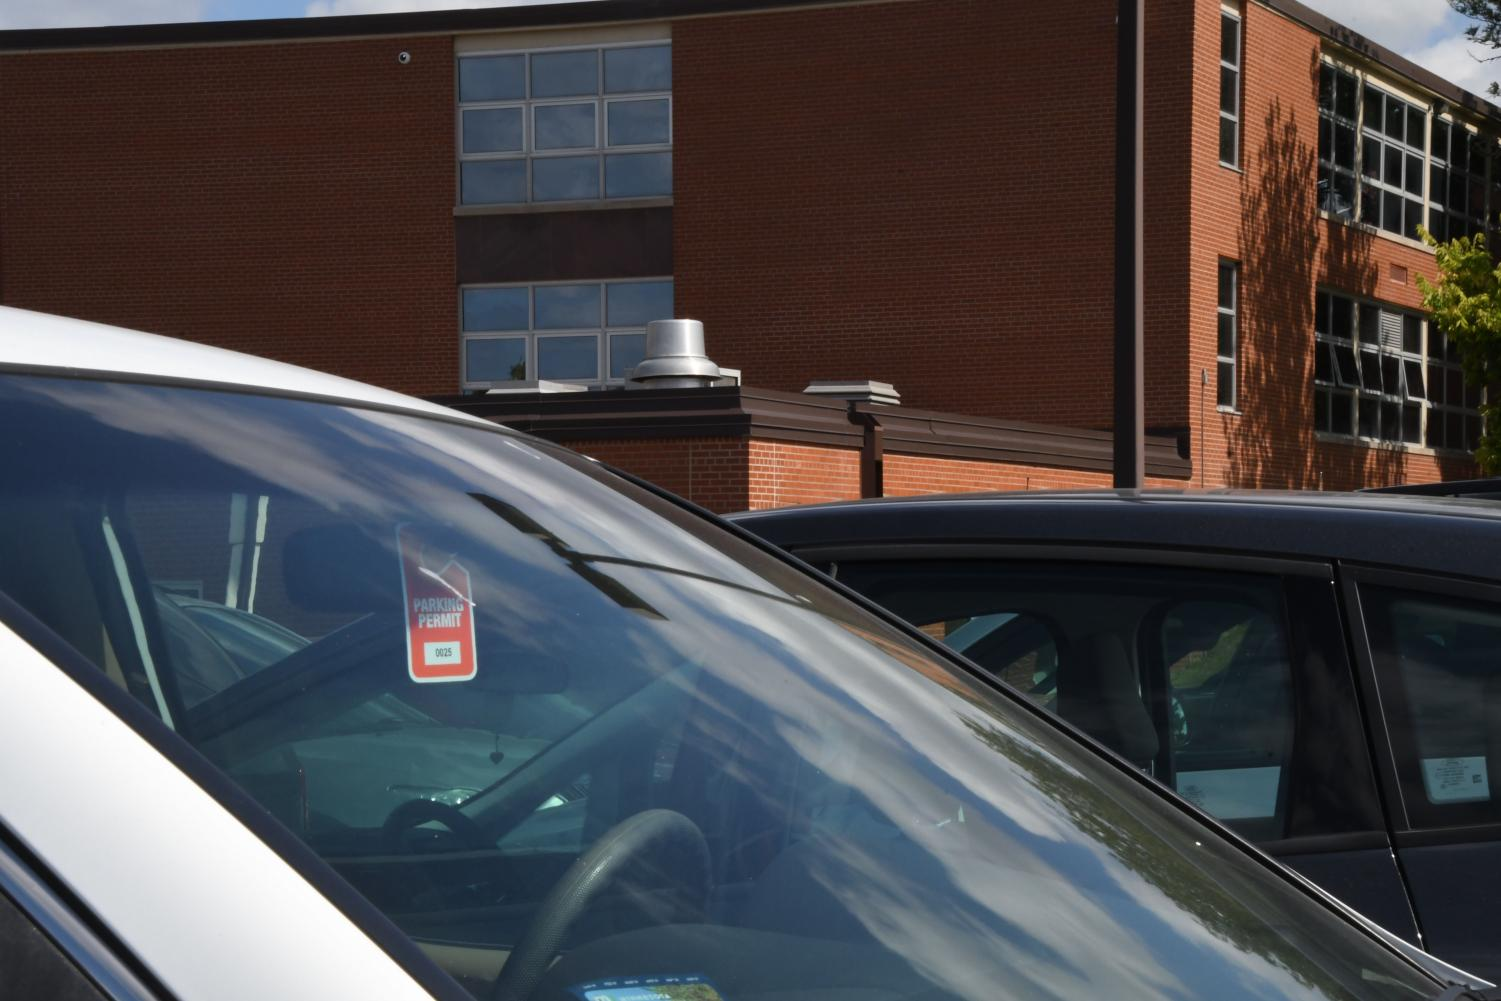 A parking pass hangs from Park students car in the student lot. Students can buy their parking passes in the student office for $50.